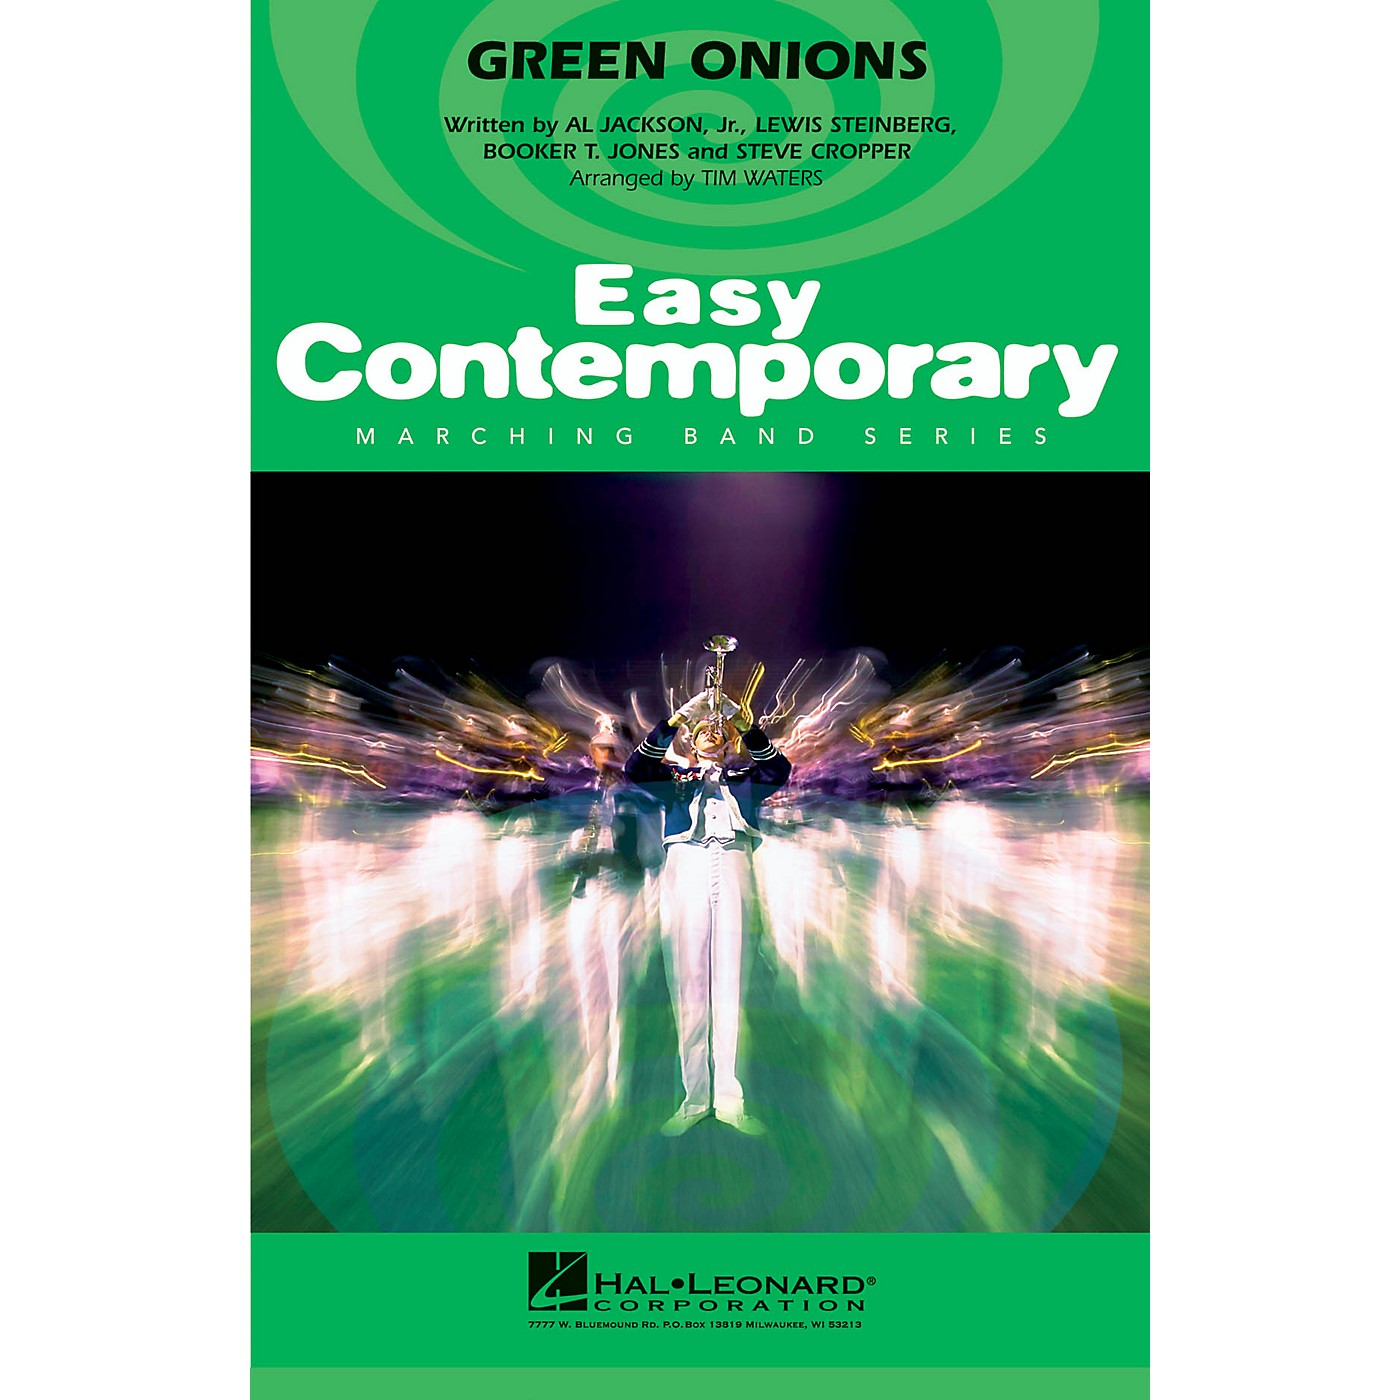 Hal Leonard Green Onions Marching Band Level 2-3 Arranged by Tim Waters thumbnail